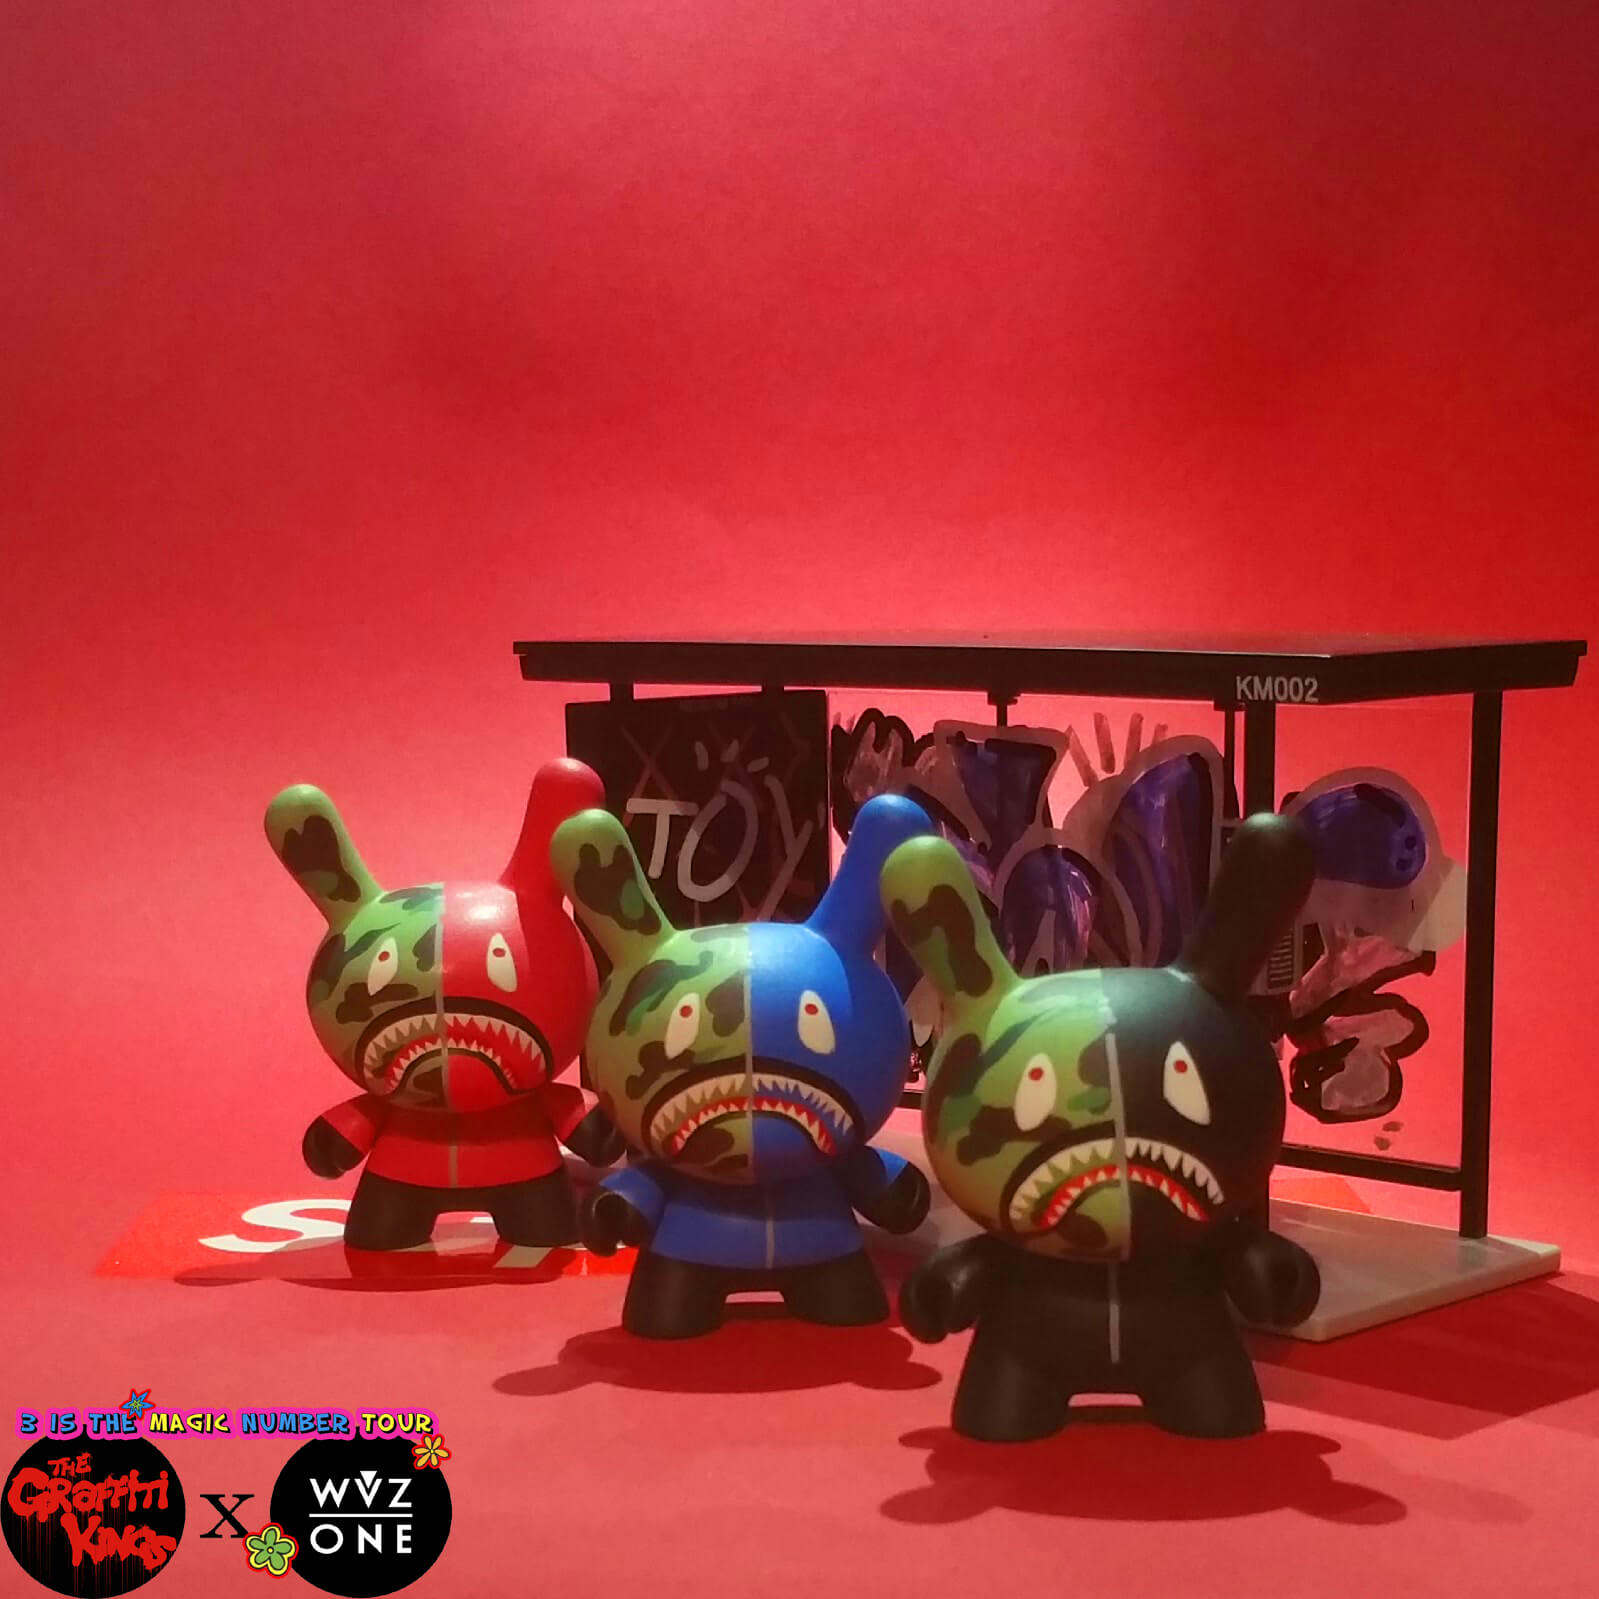 HypeAF-Dunny-Series-3-IS-THE-MAGIC-NUMBER-TOUR-By-WuzONE-x-Graffiti-Kings-